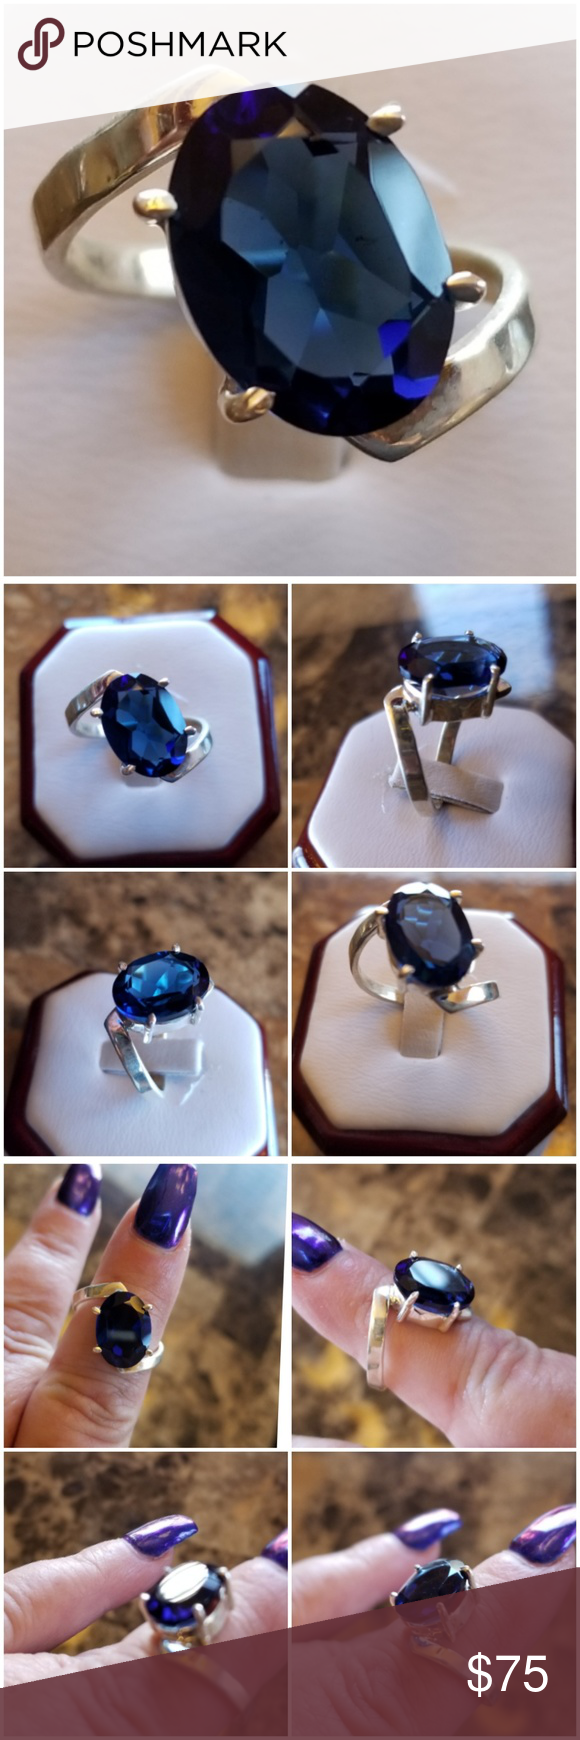 5ct Blue Sapphire Solitaire Ring Size 8 Sapphire